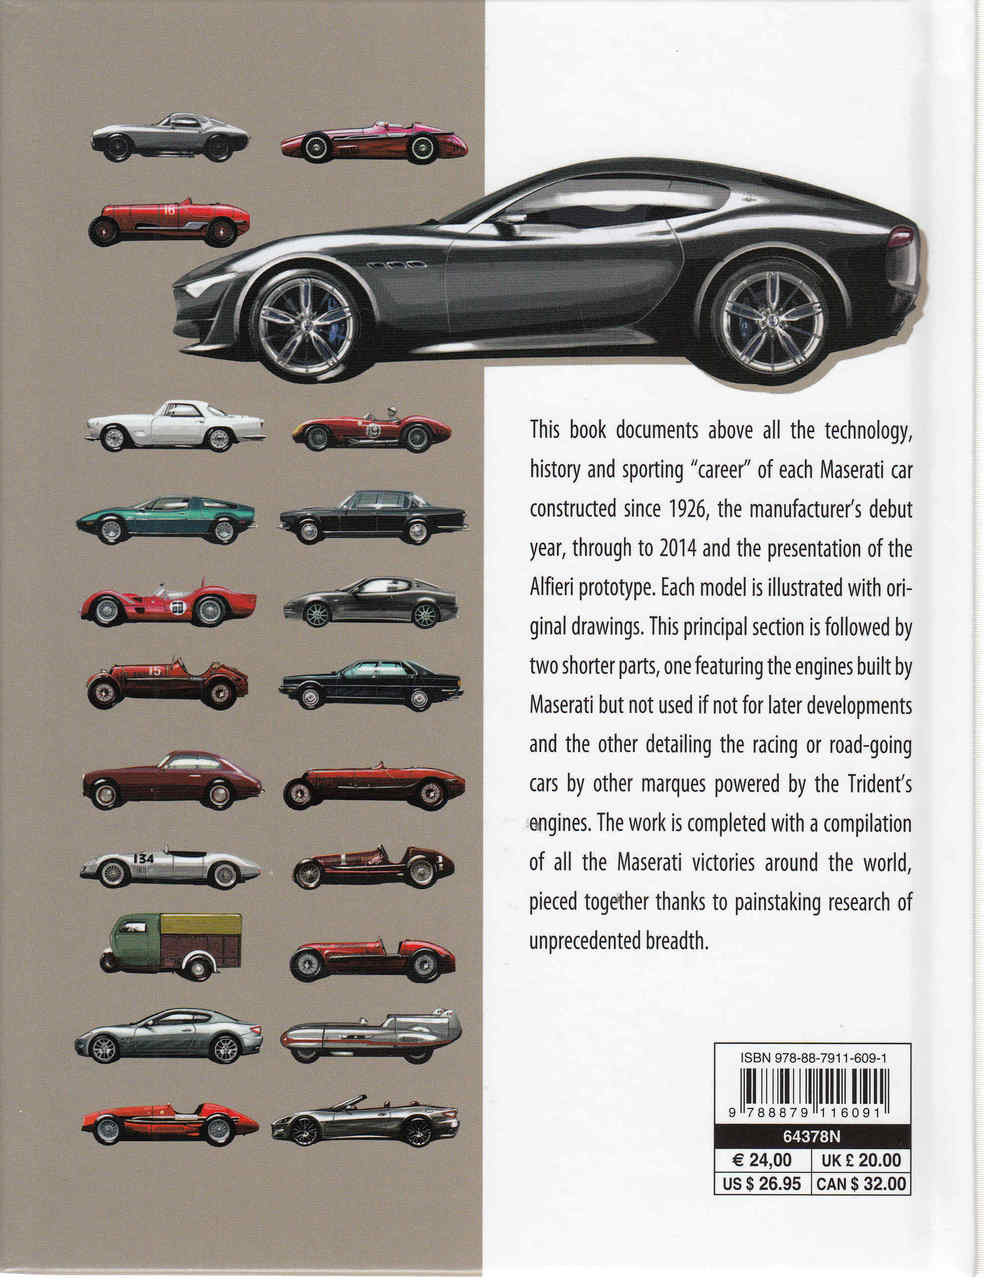 from 1957 to the Present Day The Magnificent 7 The Enthusiasts Guide to Every Lotus 7 and Caterham 7